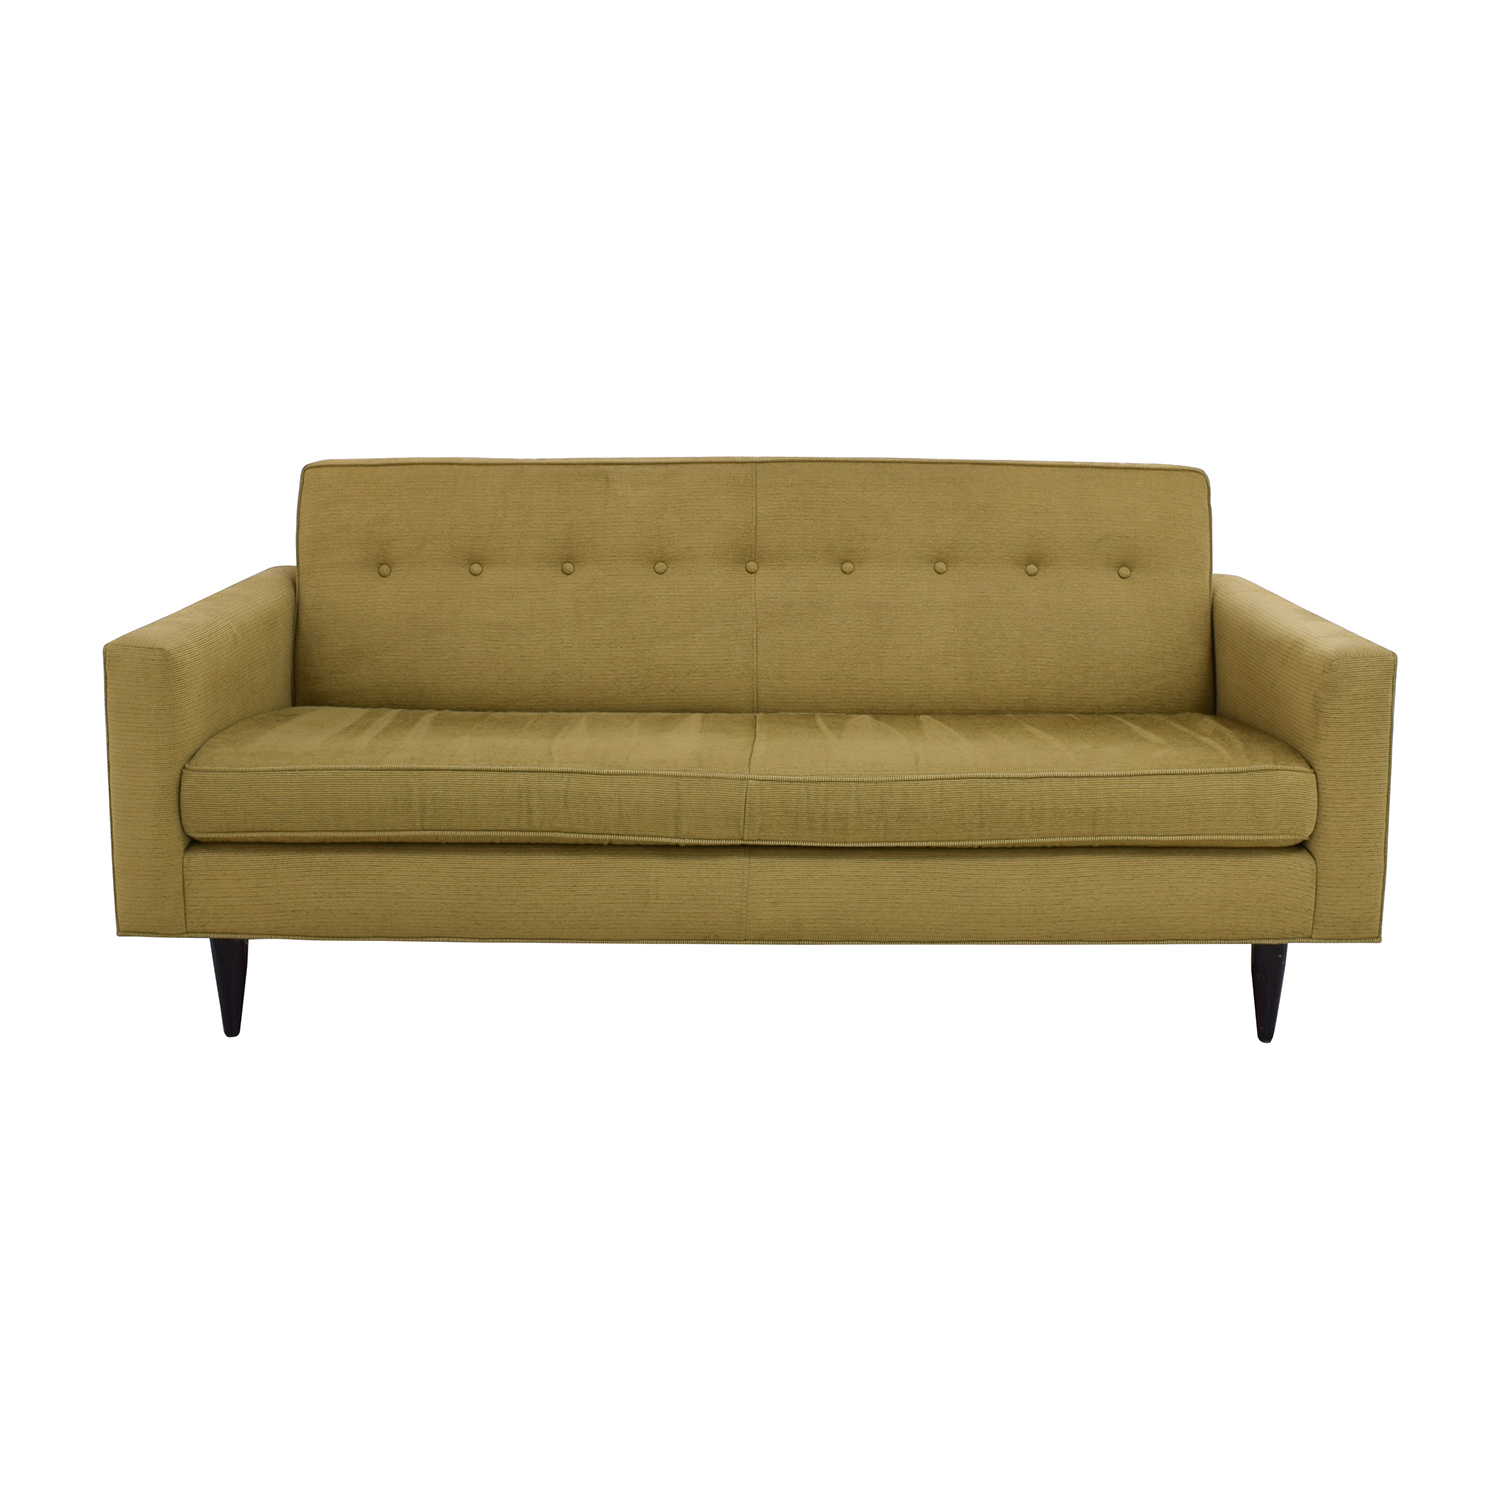 Design Within Reach Design Within Reach Bantam Tufted Green Sofa price